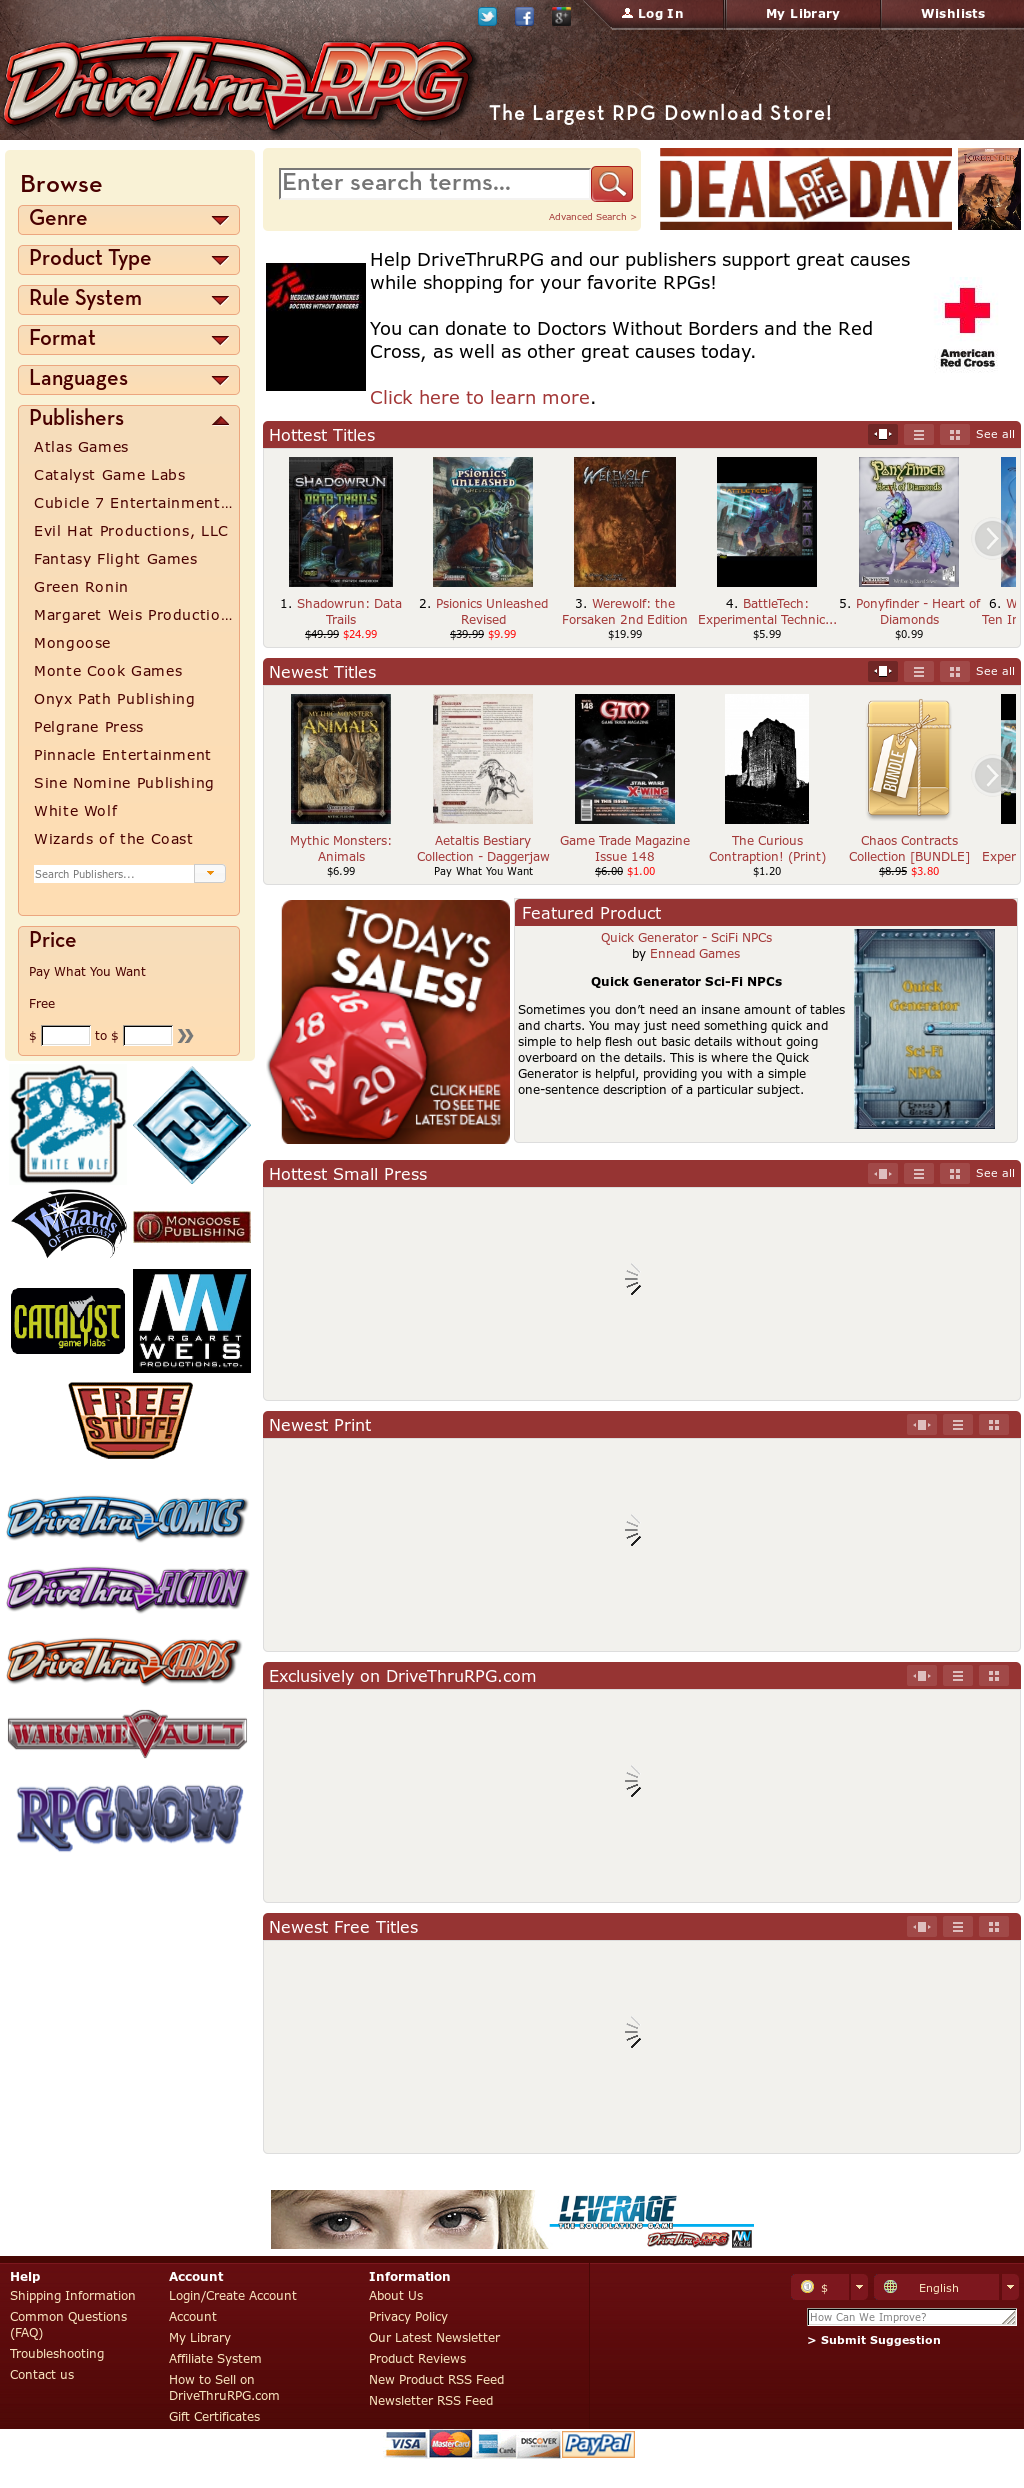 Drivethrurpg Competitors, Revenue and Employees - Owler